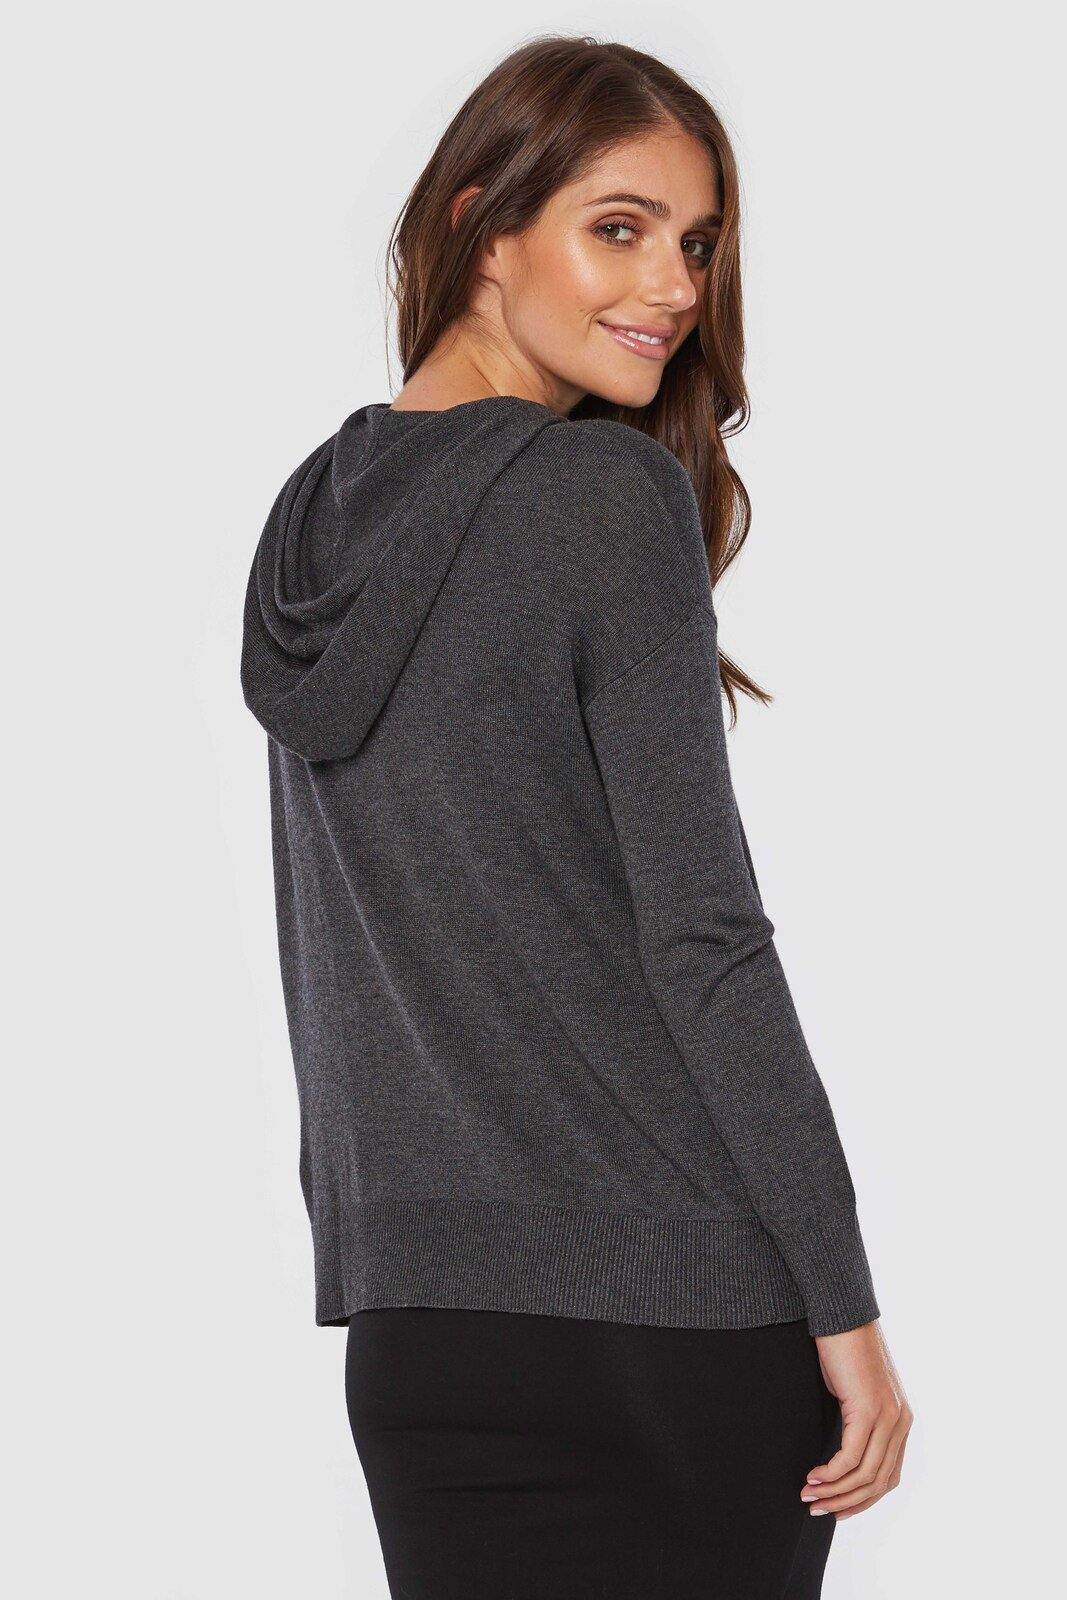 Bamboo Body Knit Bamboo Hoodie style {{product.sku}} - buy from Weekends on 2nd Ave at {{shop.url}} or visit our shop at Second Ave Plaza on the corner of Beaufort Street & Second Avenue Mount Lawley WA